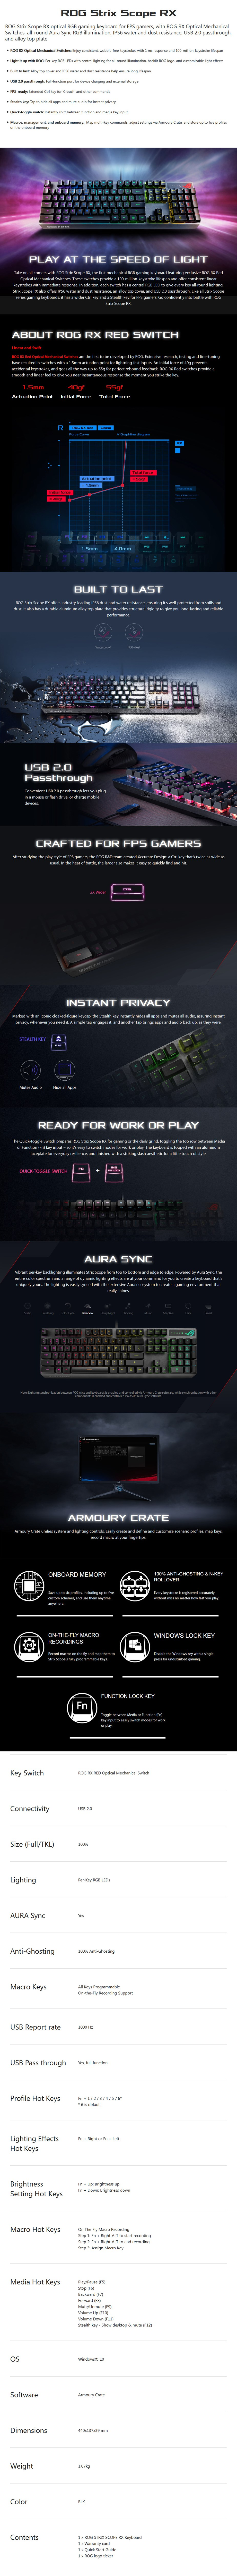 ASUS ROG STRIX Scope RX RGB Mechanical Gaming Keyboard - Overview 1